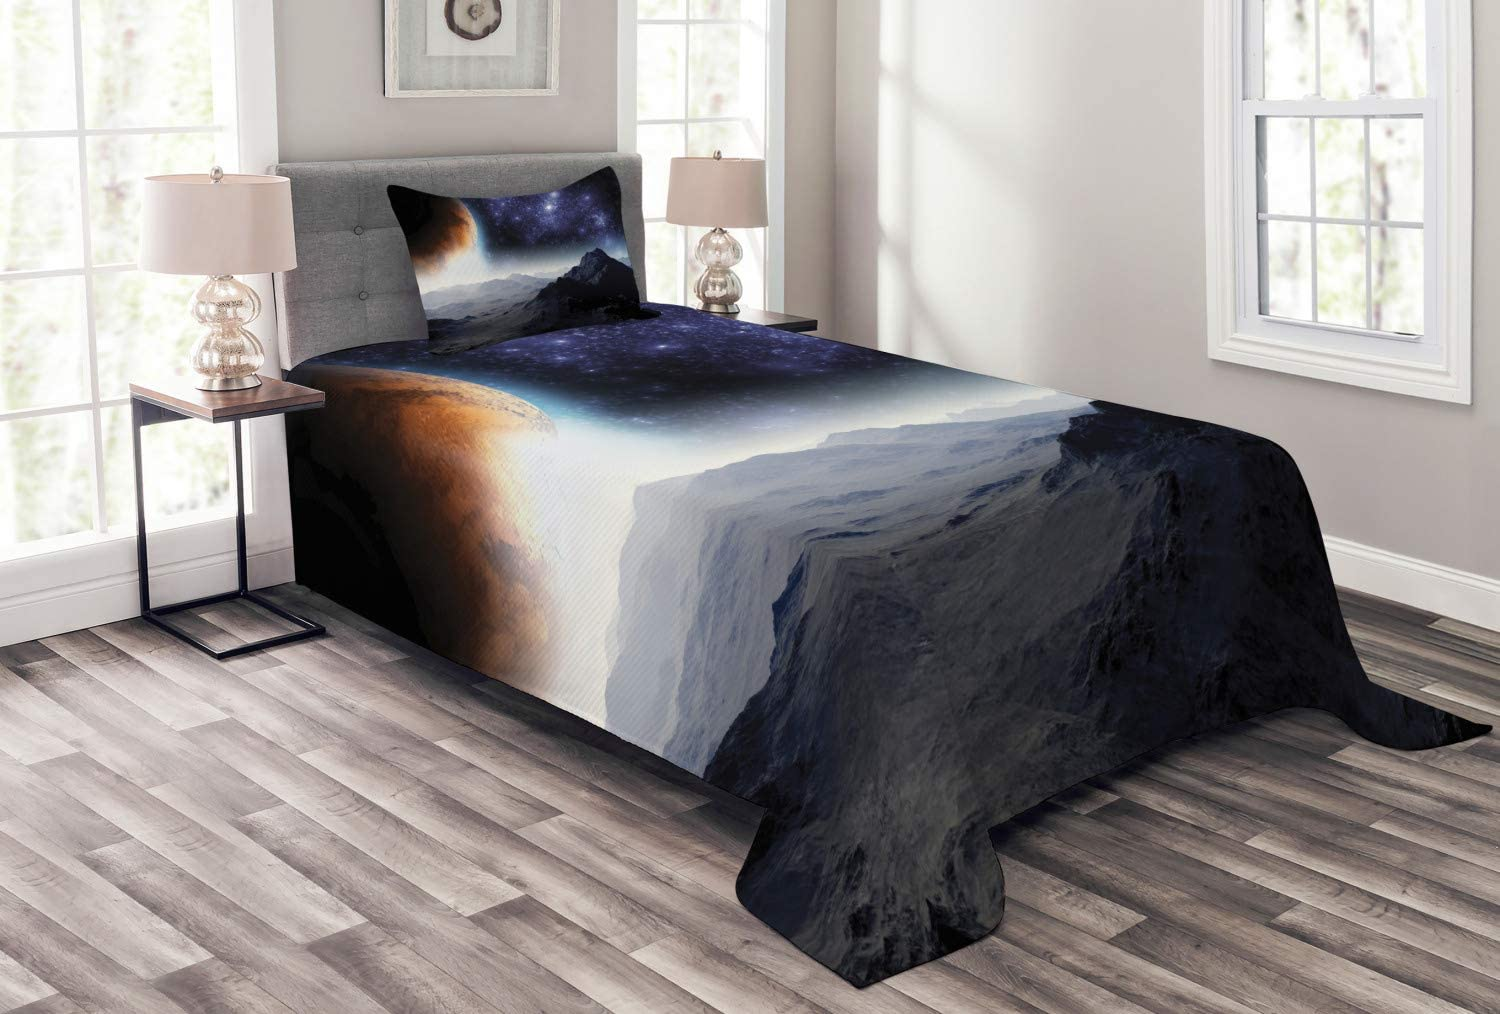 Ambesonne Outer Space Bedspread, Science Fiction of Galaxy Nature Milkyway Atmosphere Planet Abstract, Decorative Quilted 2 Piece Coverlet Set with Pillow Sham, Twin Size, Purple Black